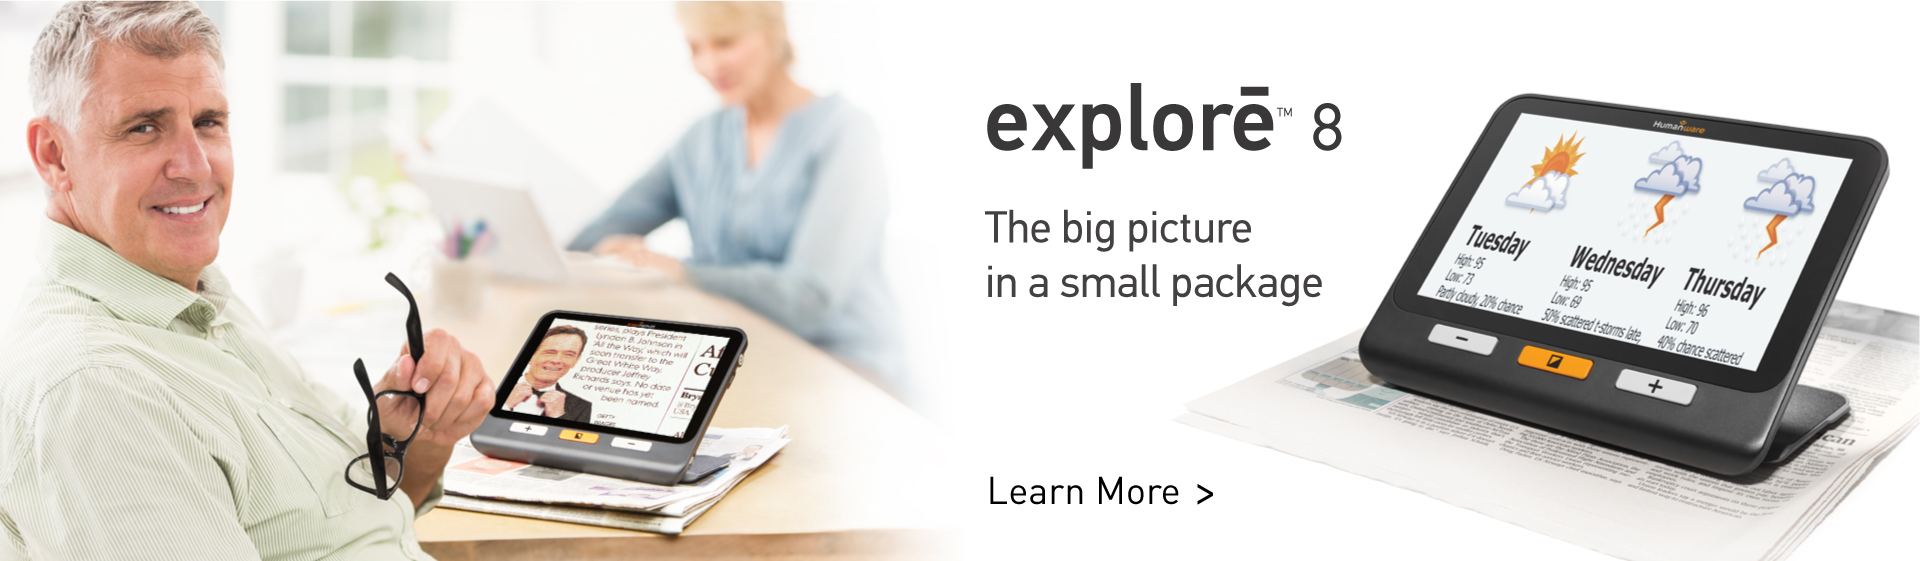 explore 8 - the big picture in a small package